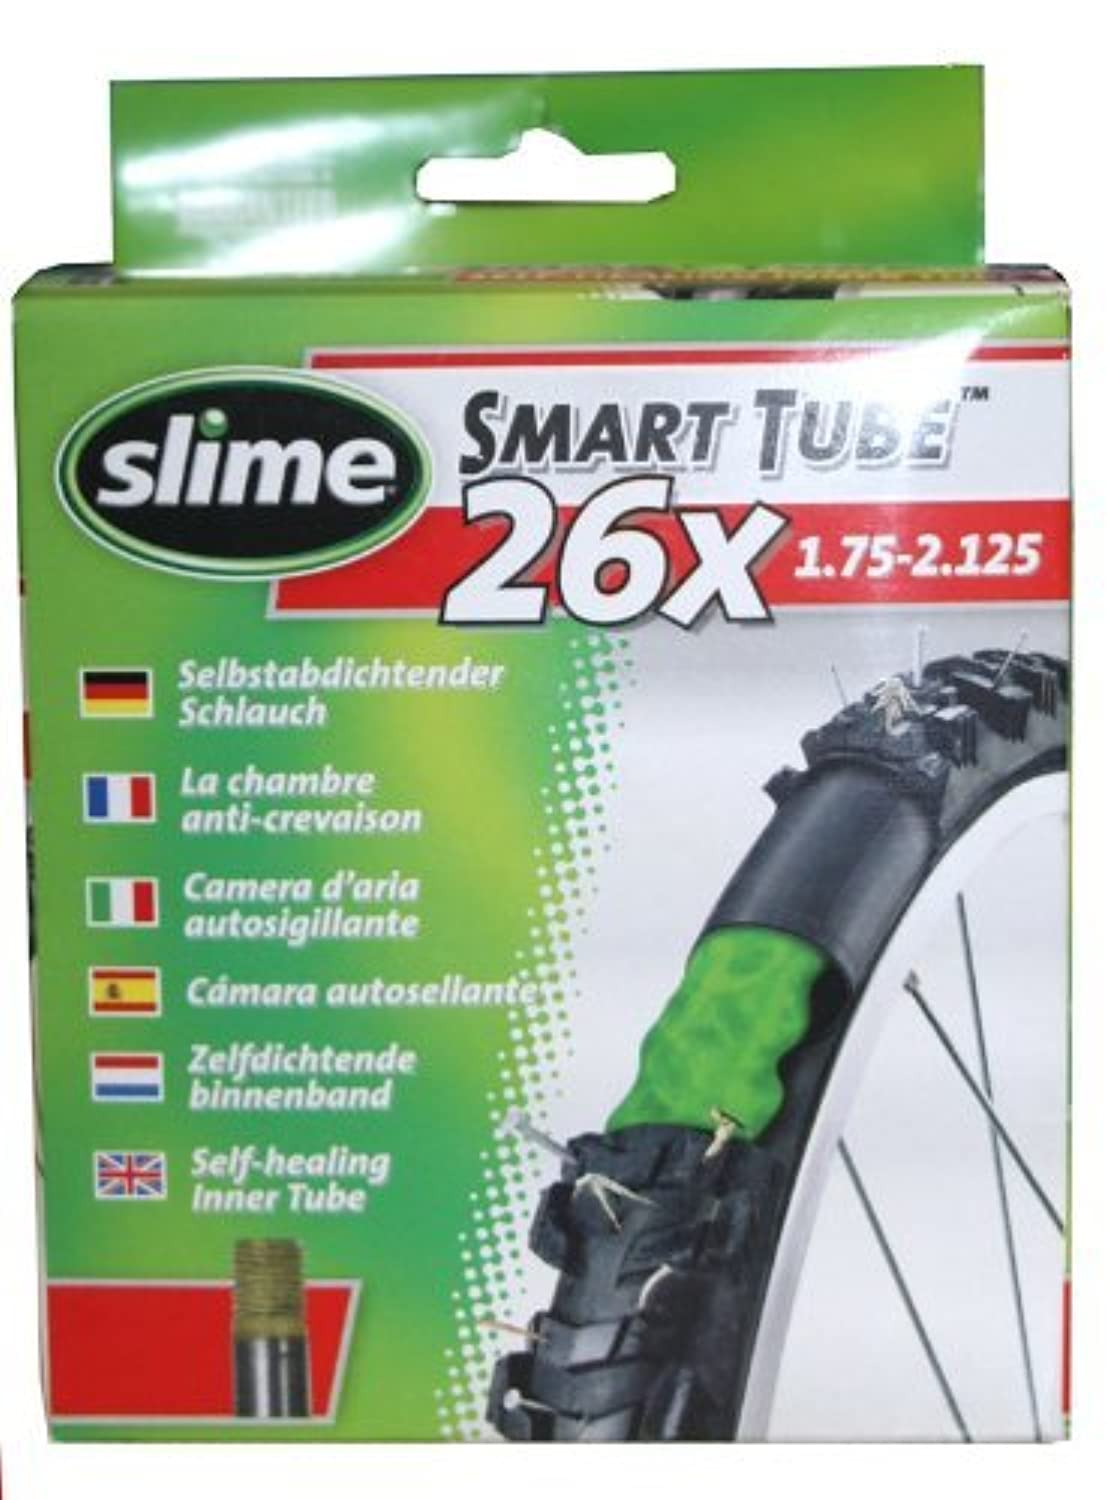 Slime Inner Tube 26 in。pre-filled with Tire Sealant